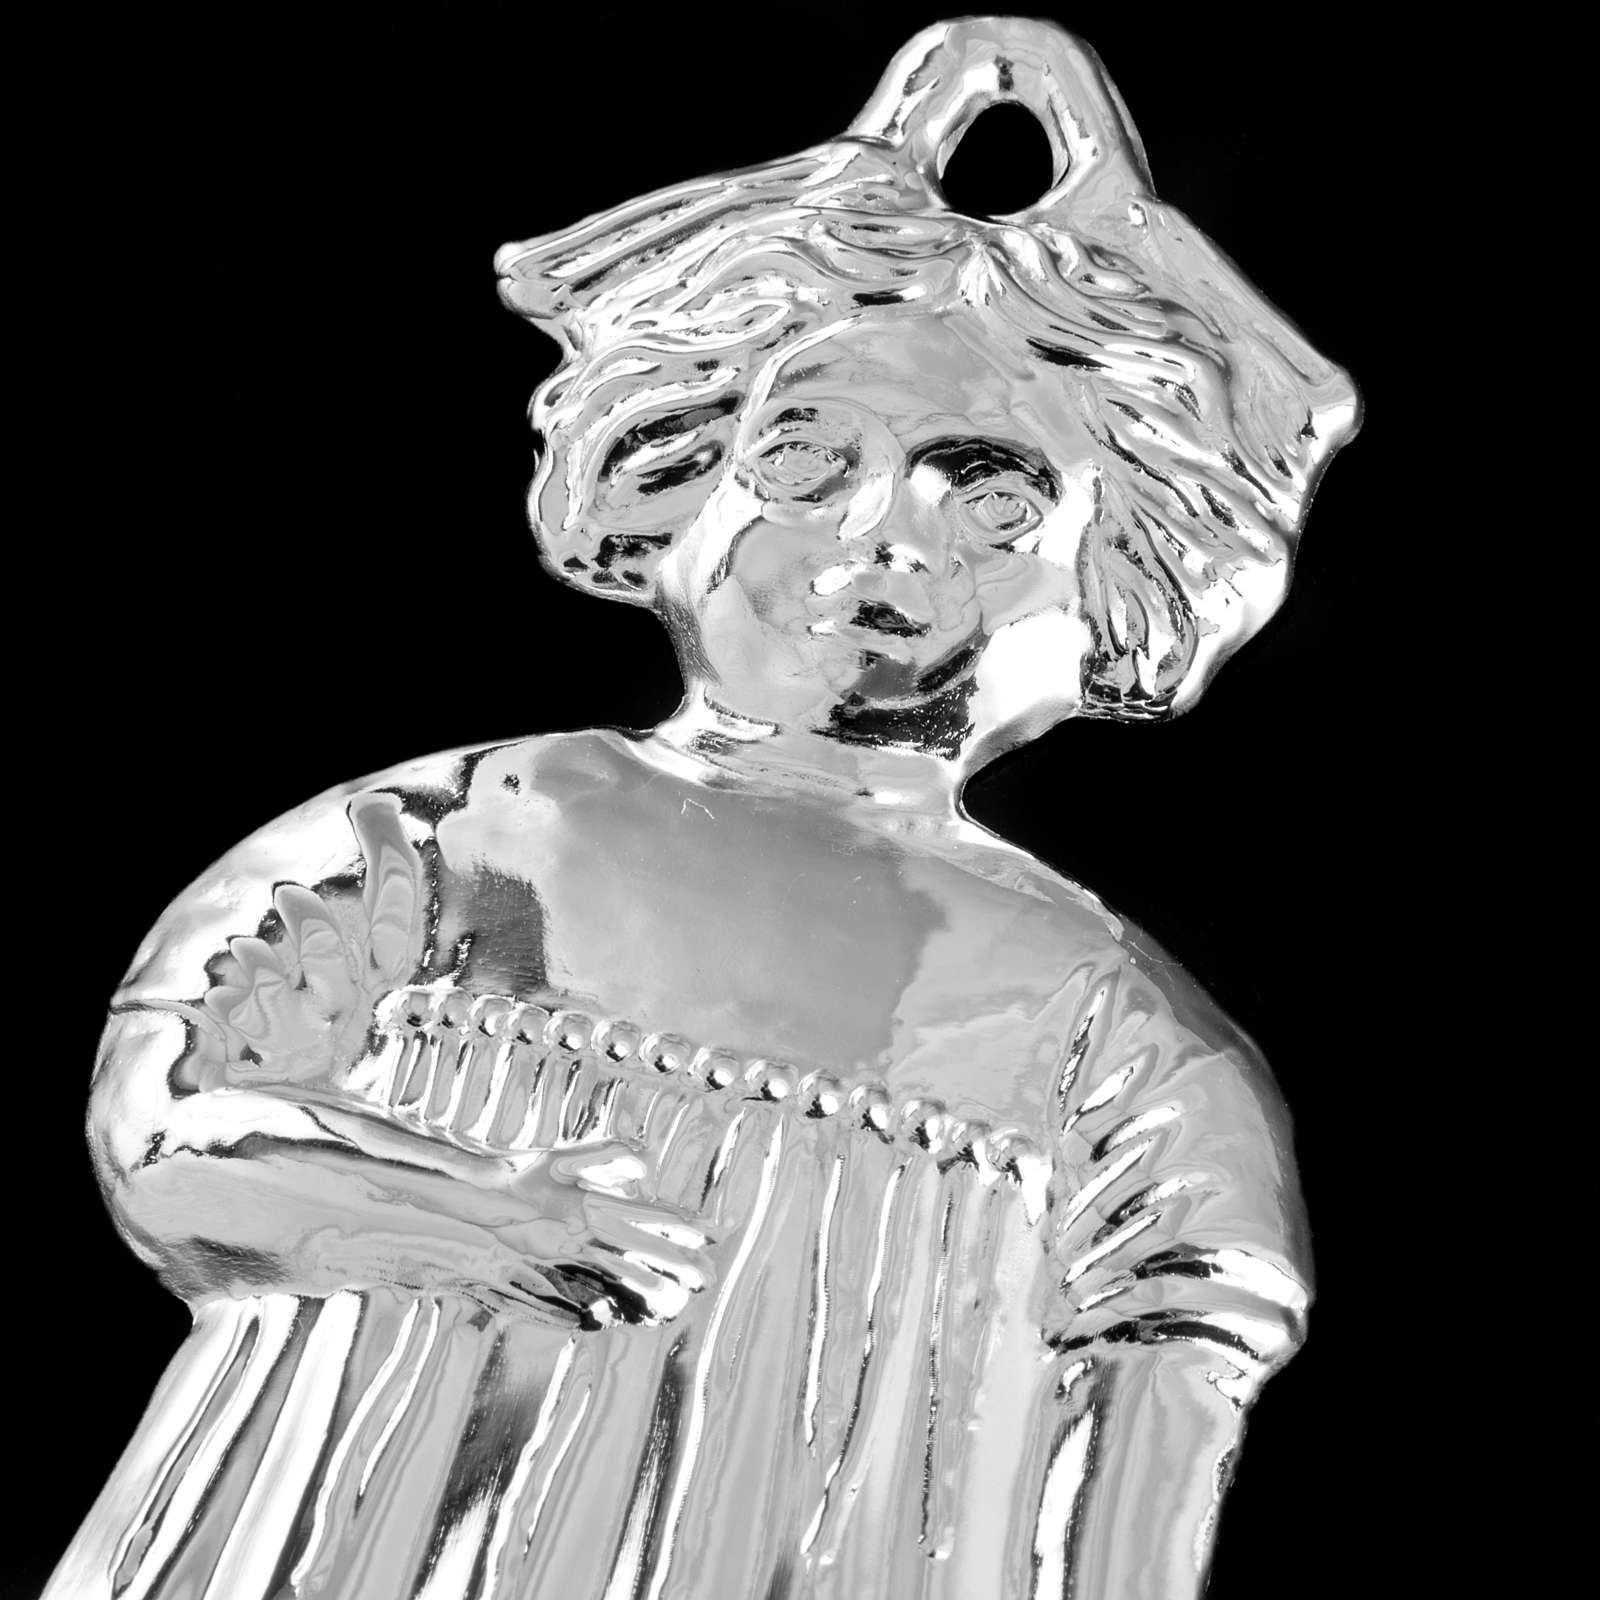 Ex-voto, little girl in sterling silver or metal, 13cm 3